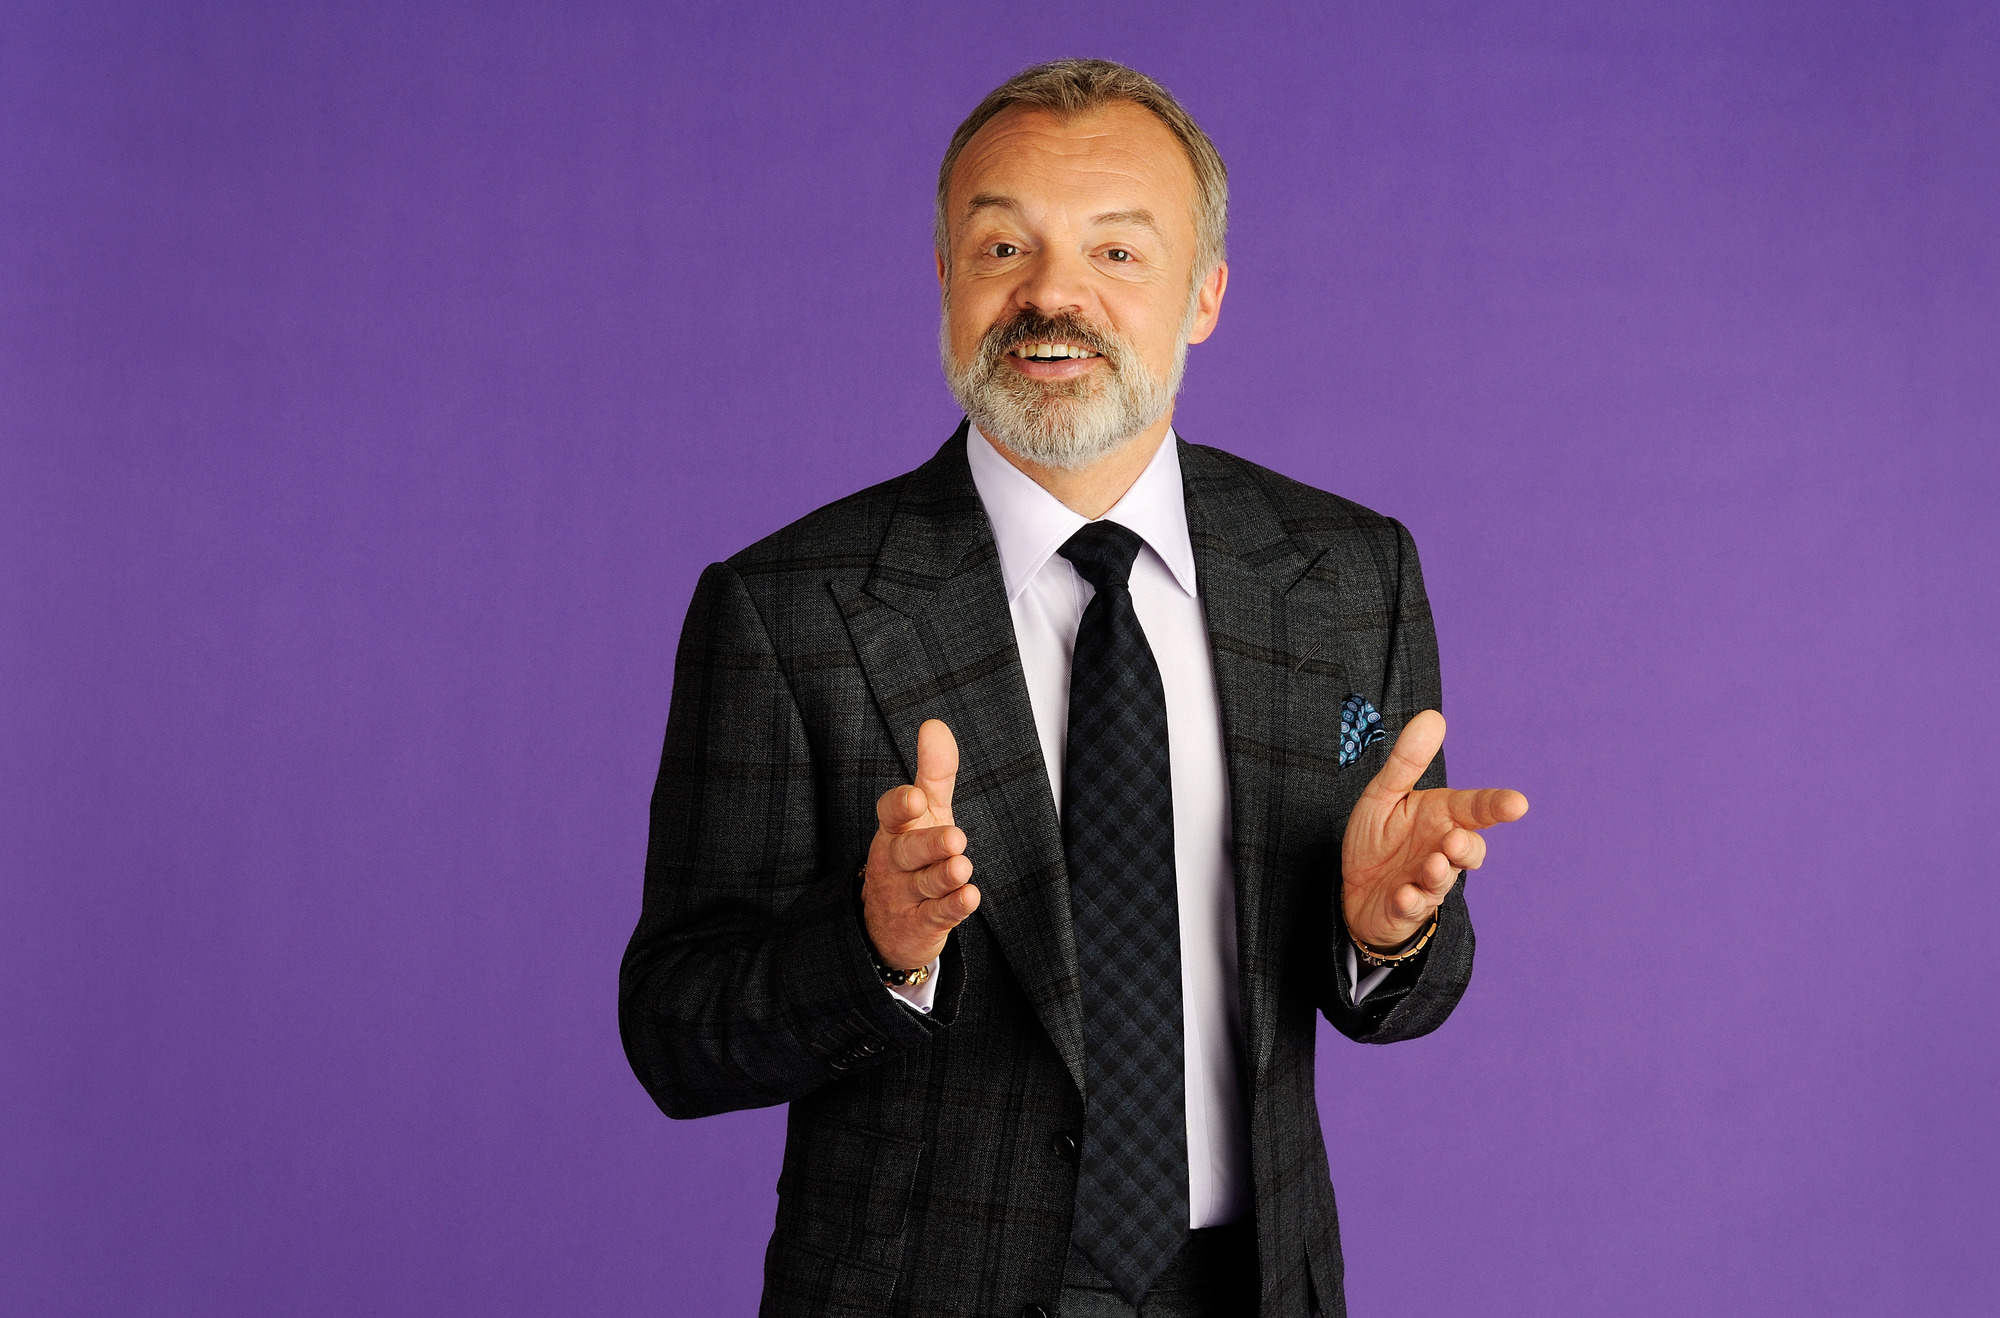 Graham Norton defends Sir Terry Wogan after producer claims he 'spoiled' Eurovision